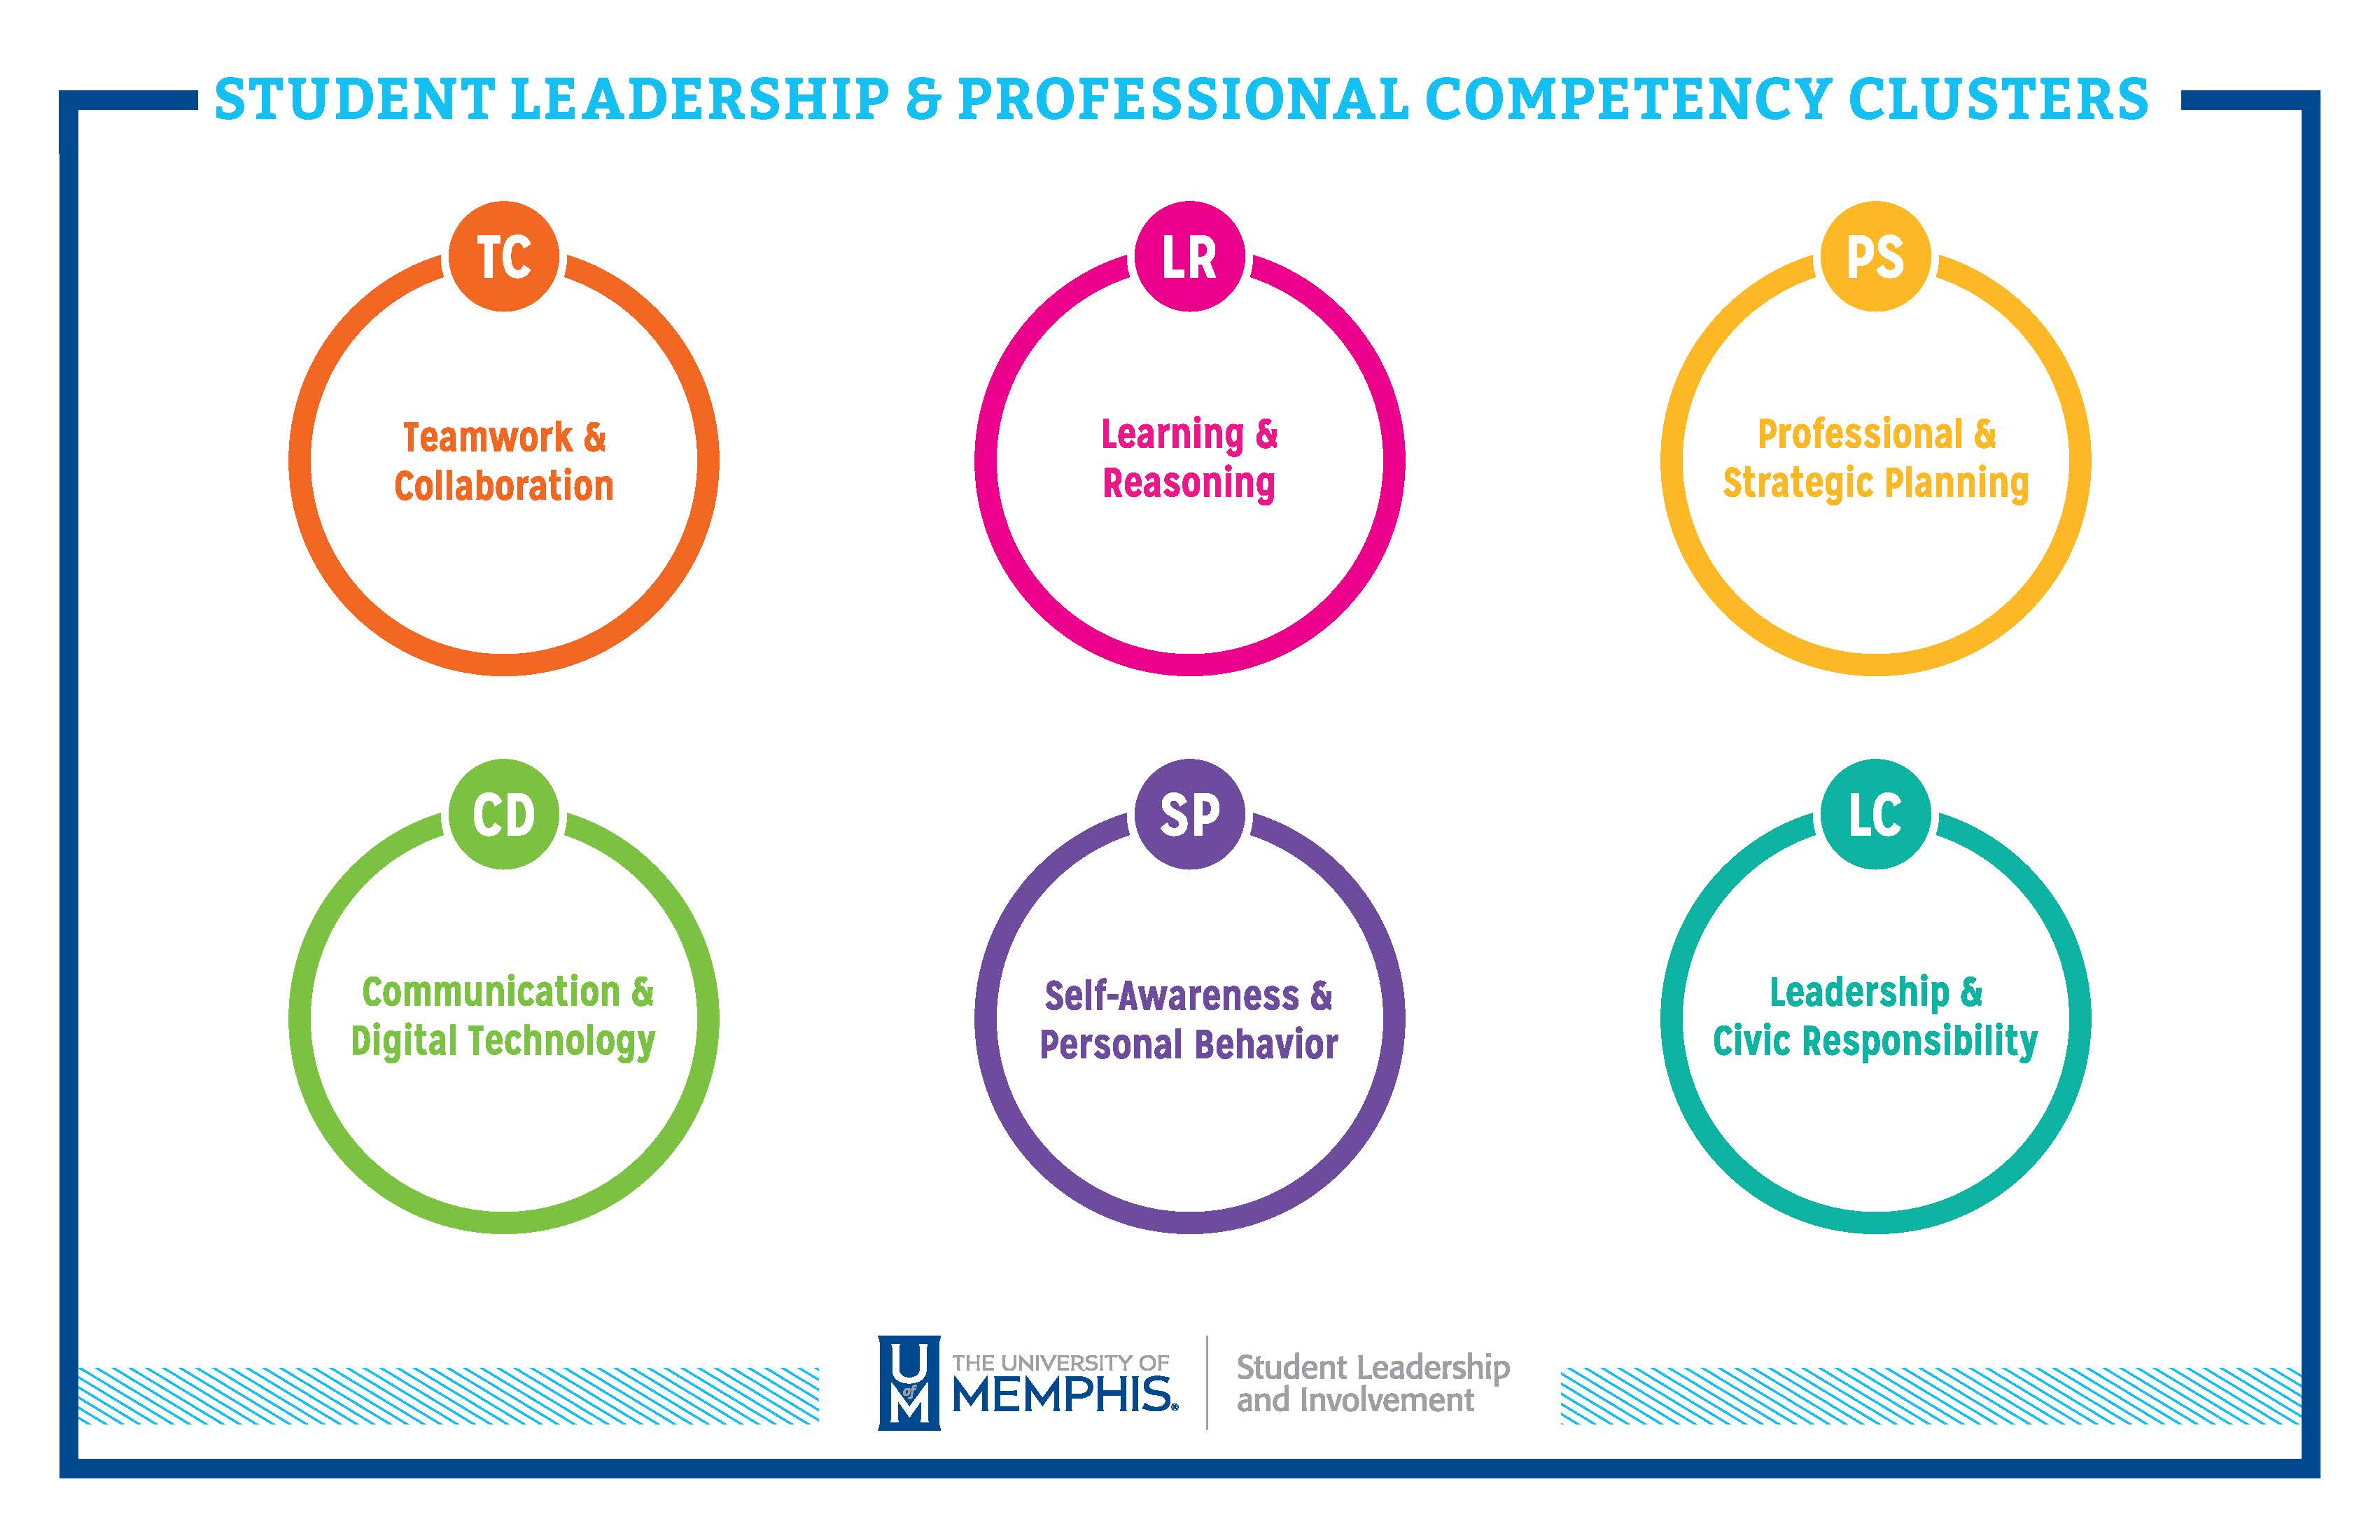 student leaderhship and professional competencies